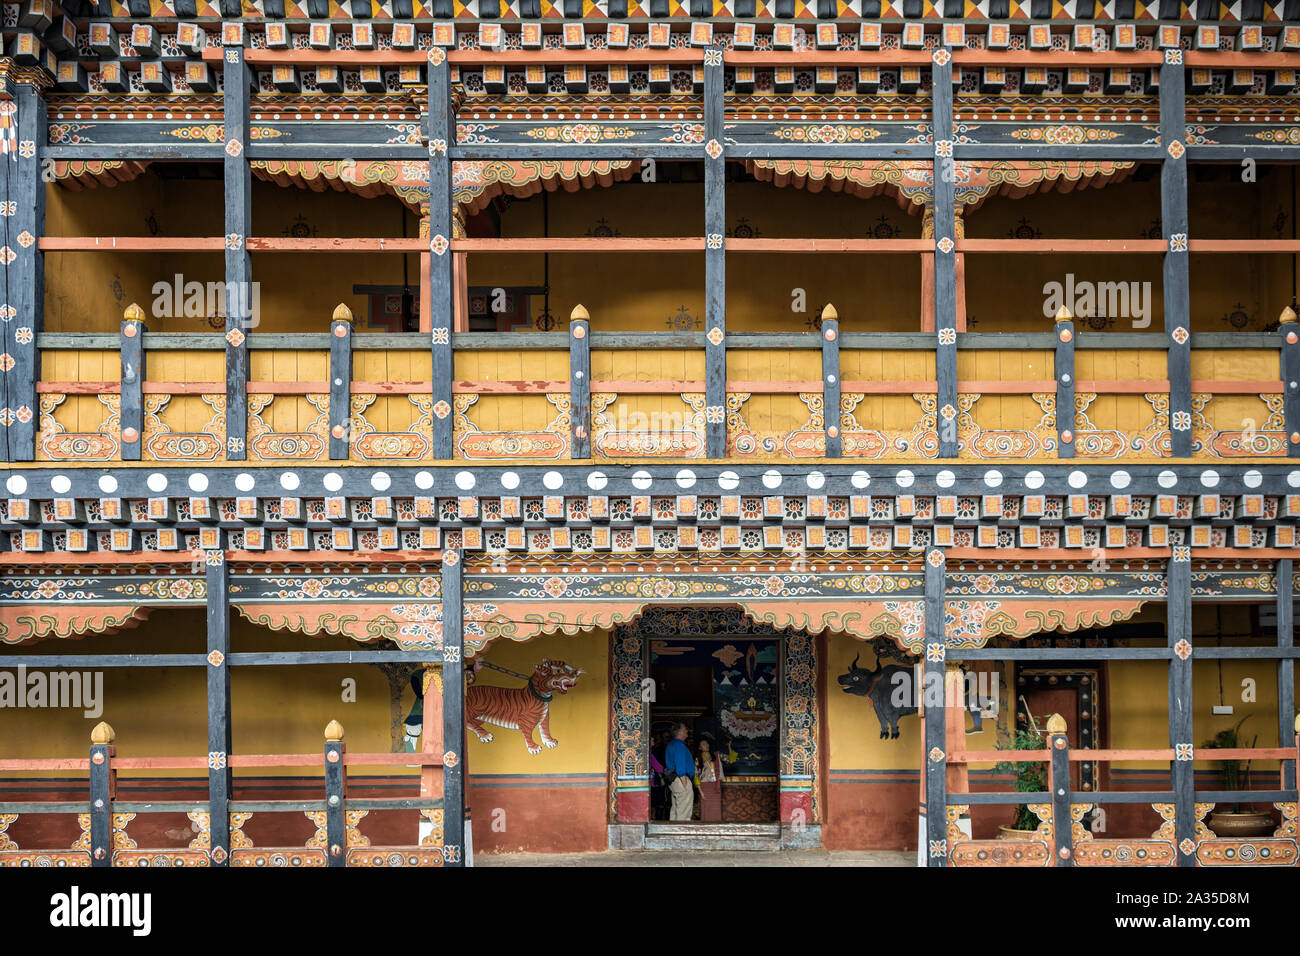 Richly decorated facade in the courtyard of the Paro dzong (Rinpung Dzong), Bhutan Stock Photo